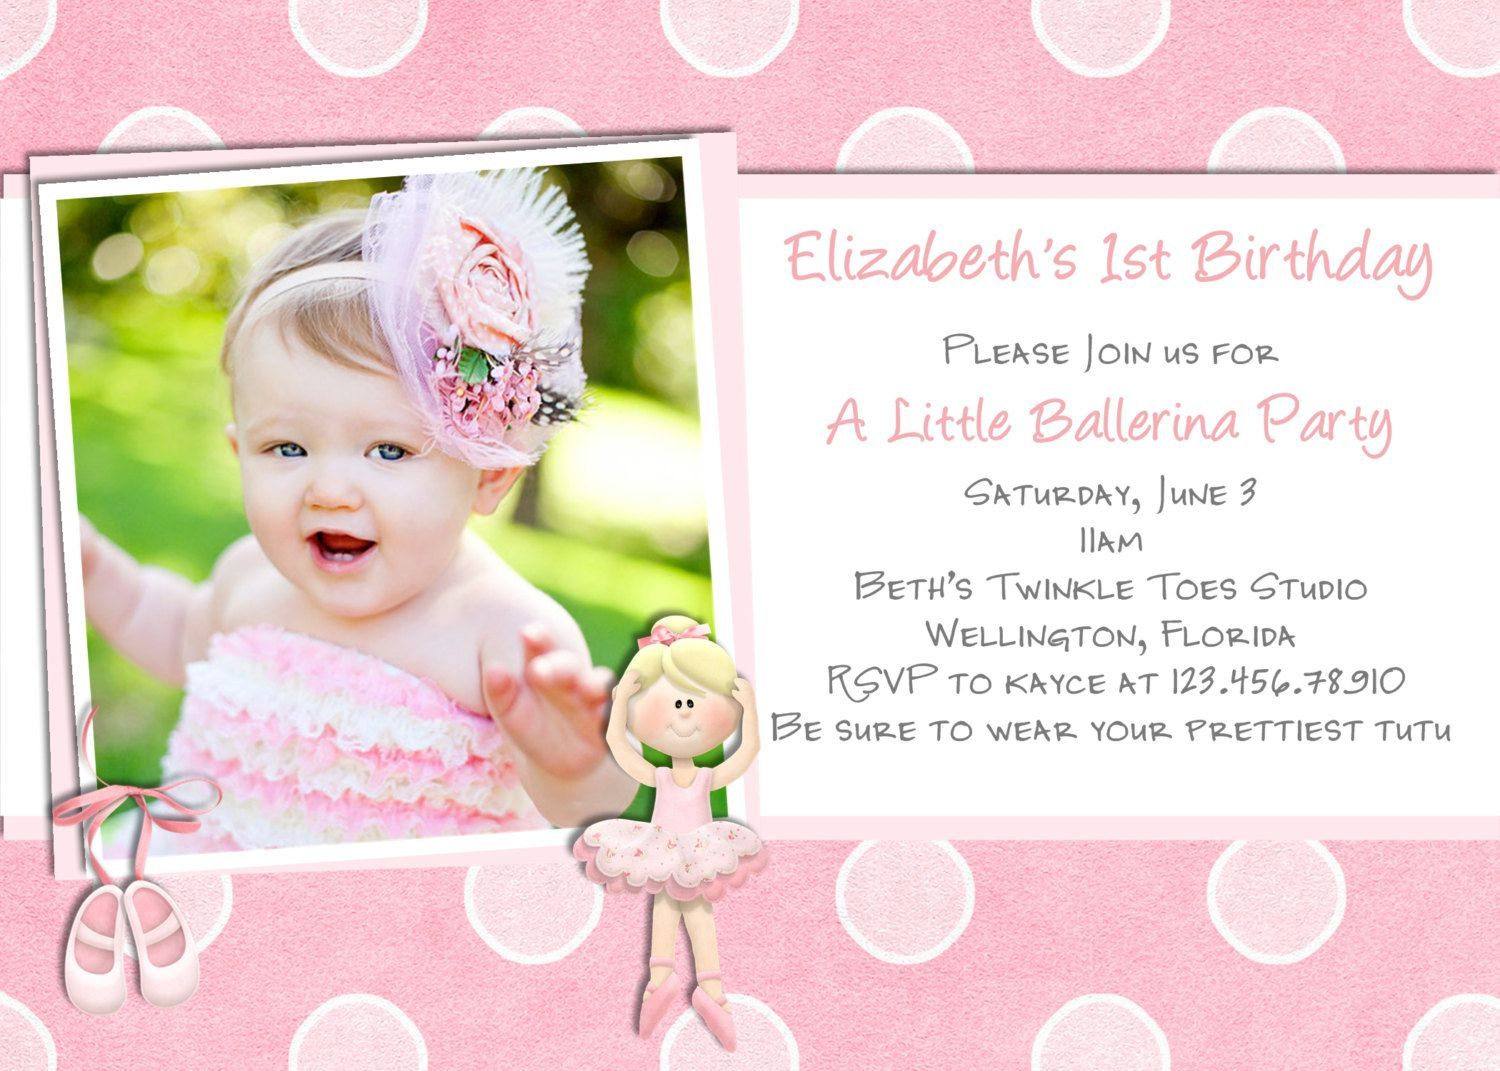 birthday invitations customized free | birthday invitations template ...